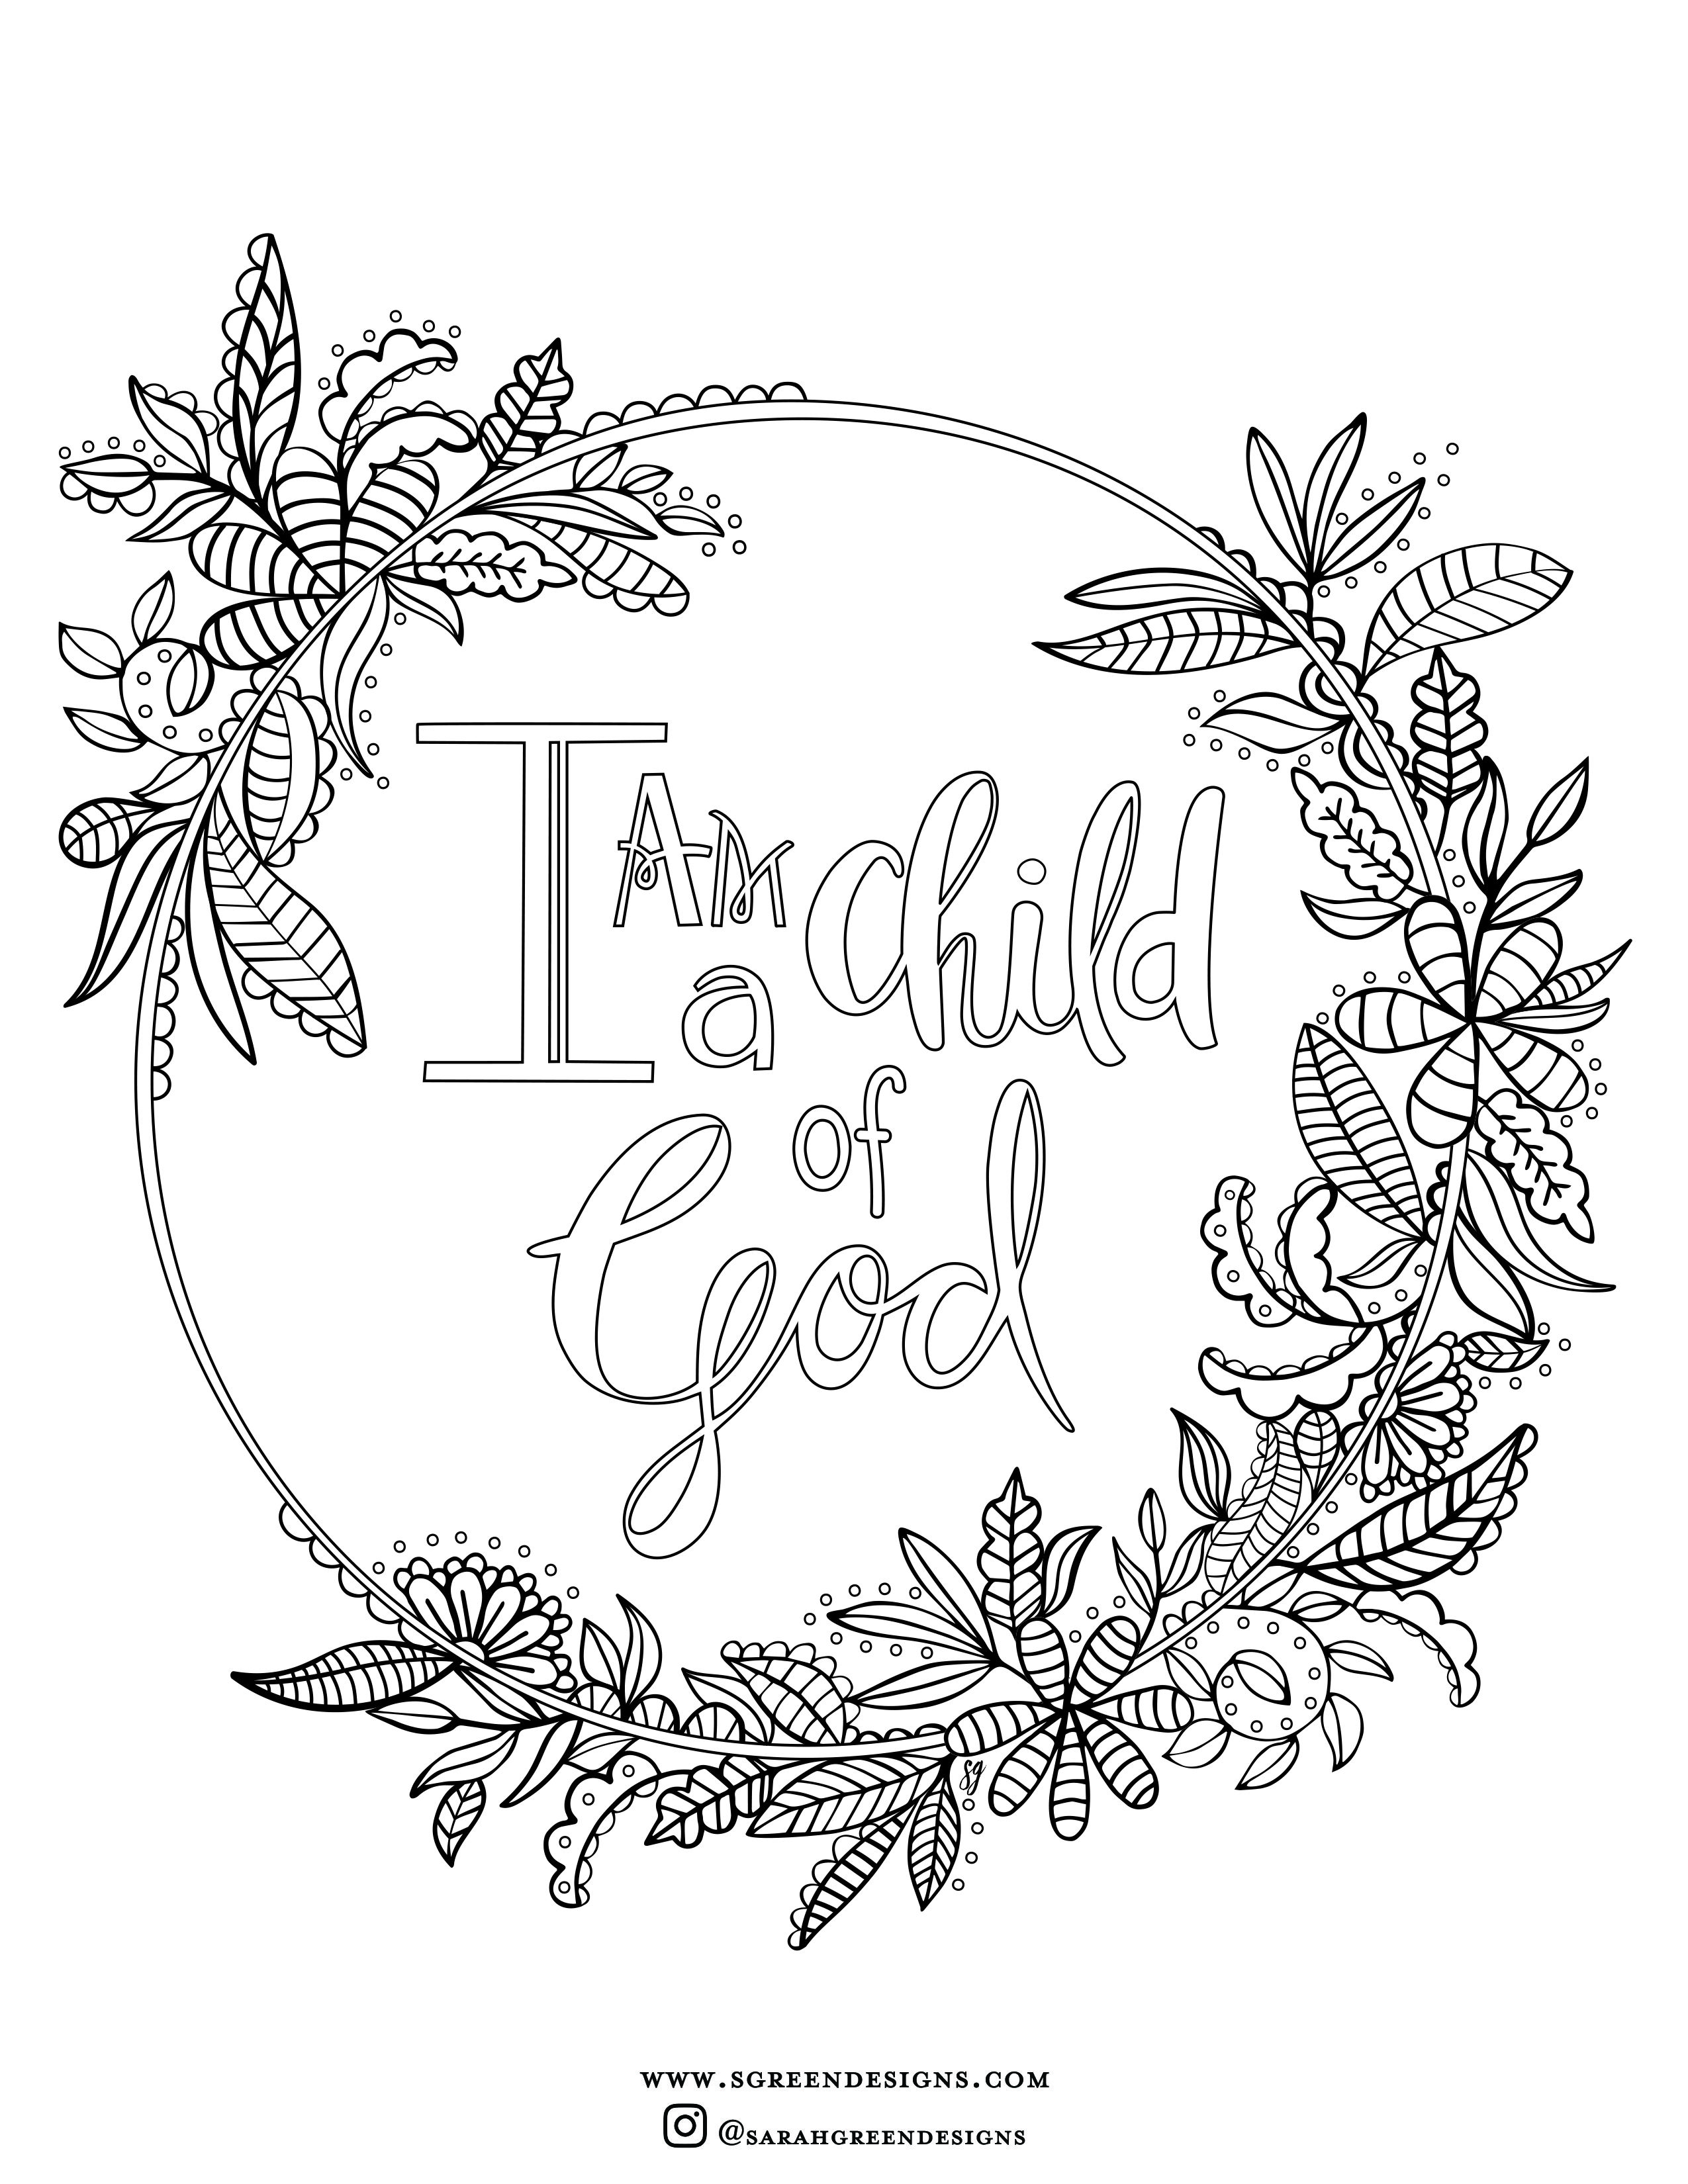 Free Coloring Page I Am A Child Of God Christian Coloring Page Vbs Coloring Page Bible Verse Coloring Page Bible Coloring Free Coloring Pages